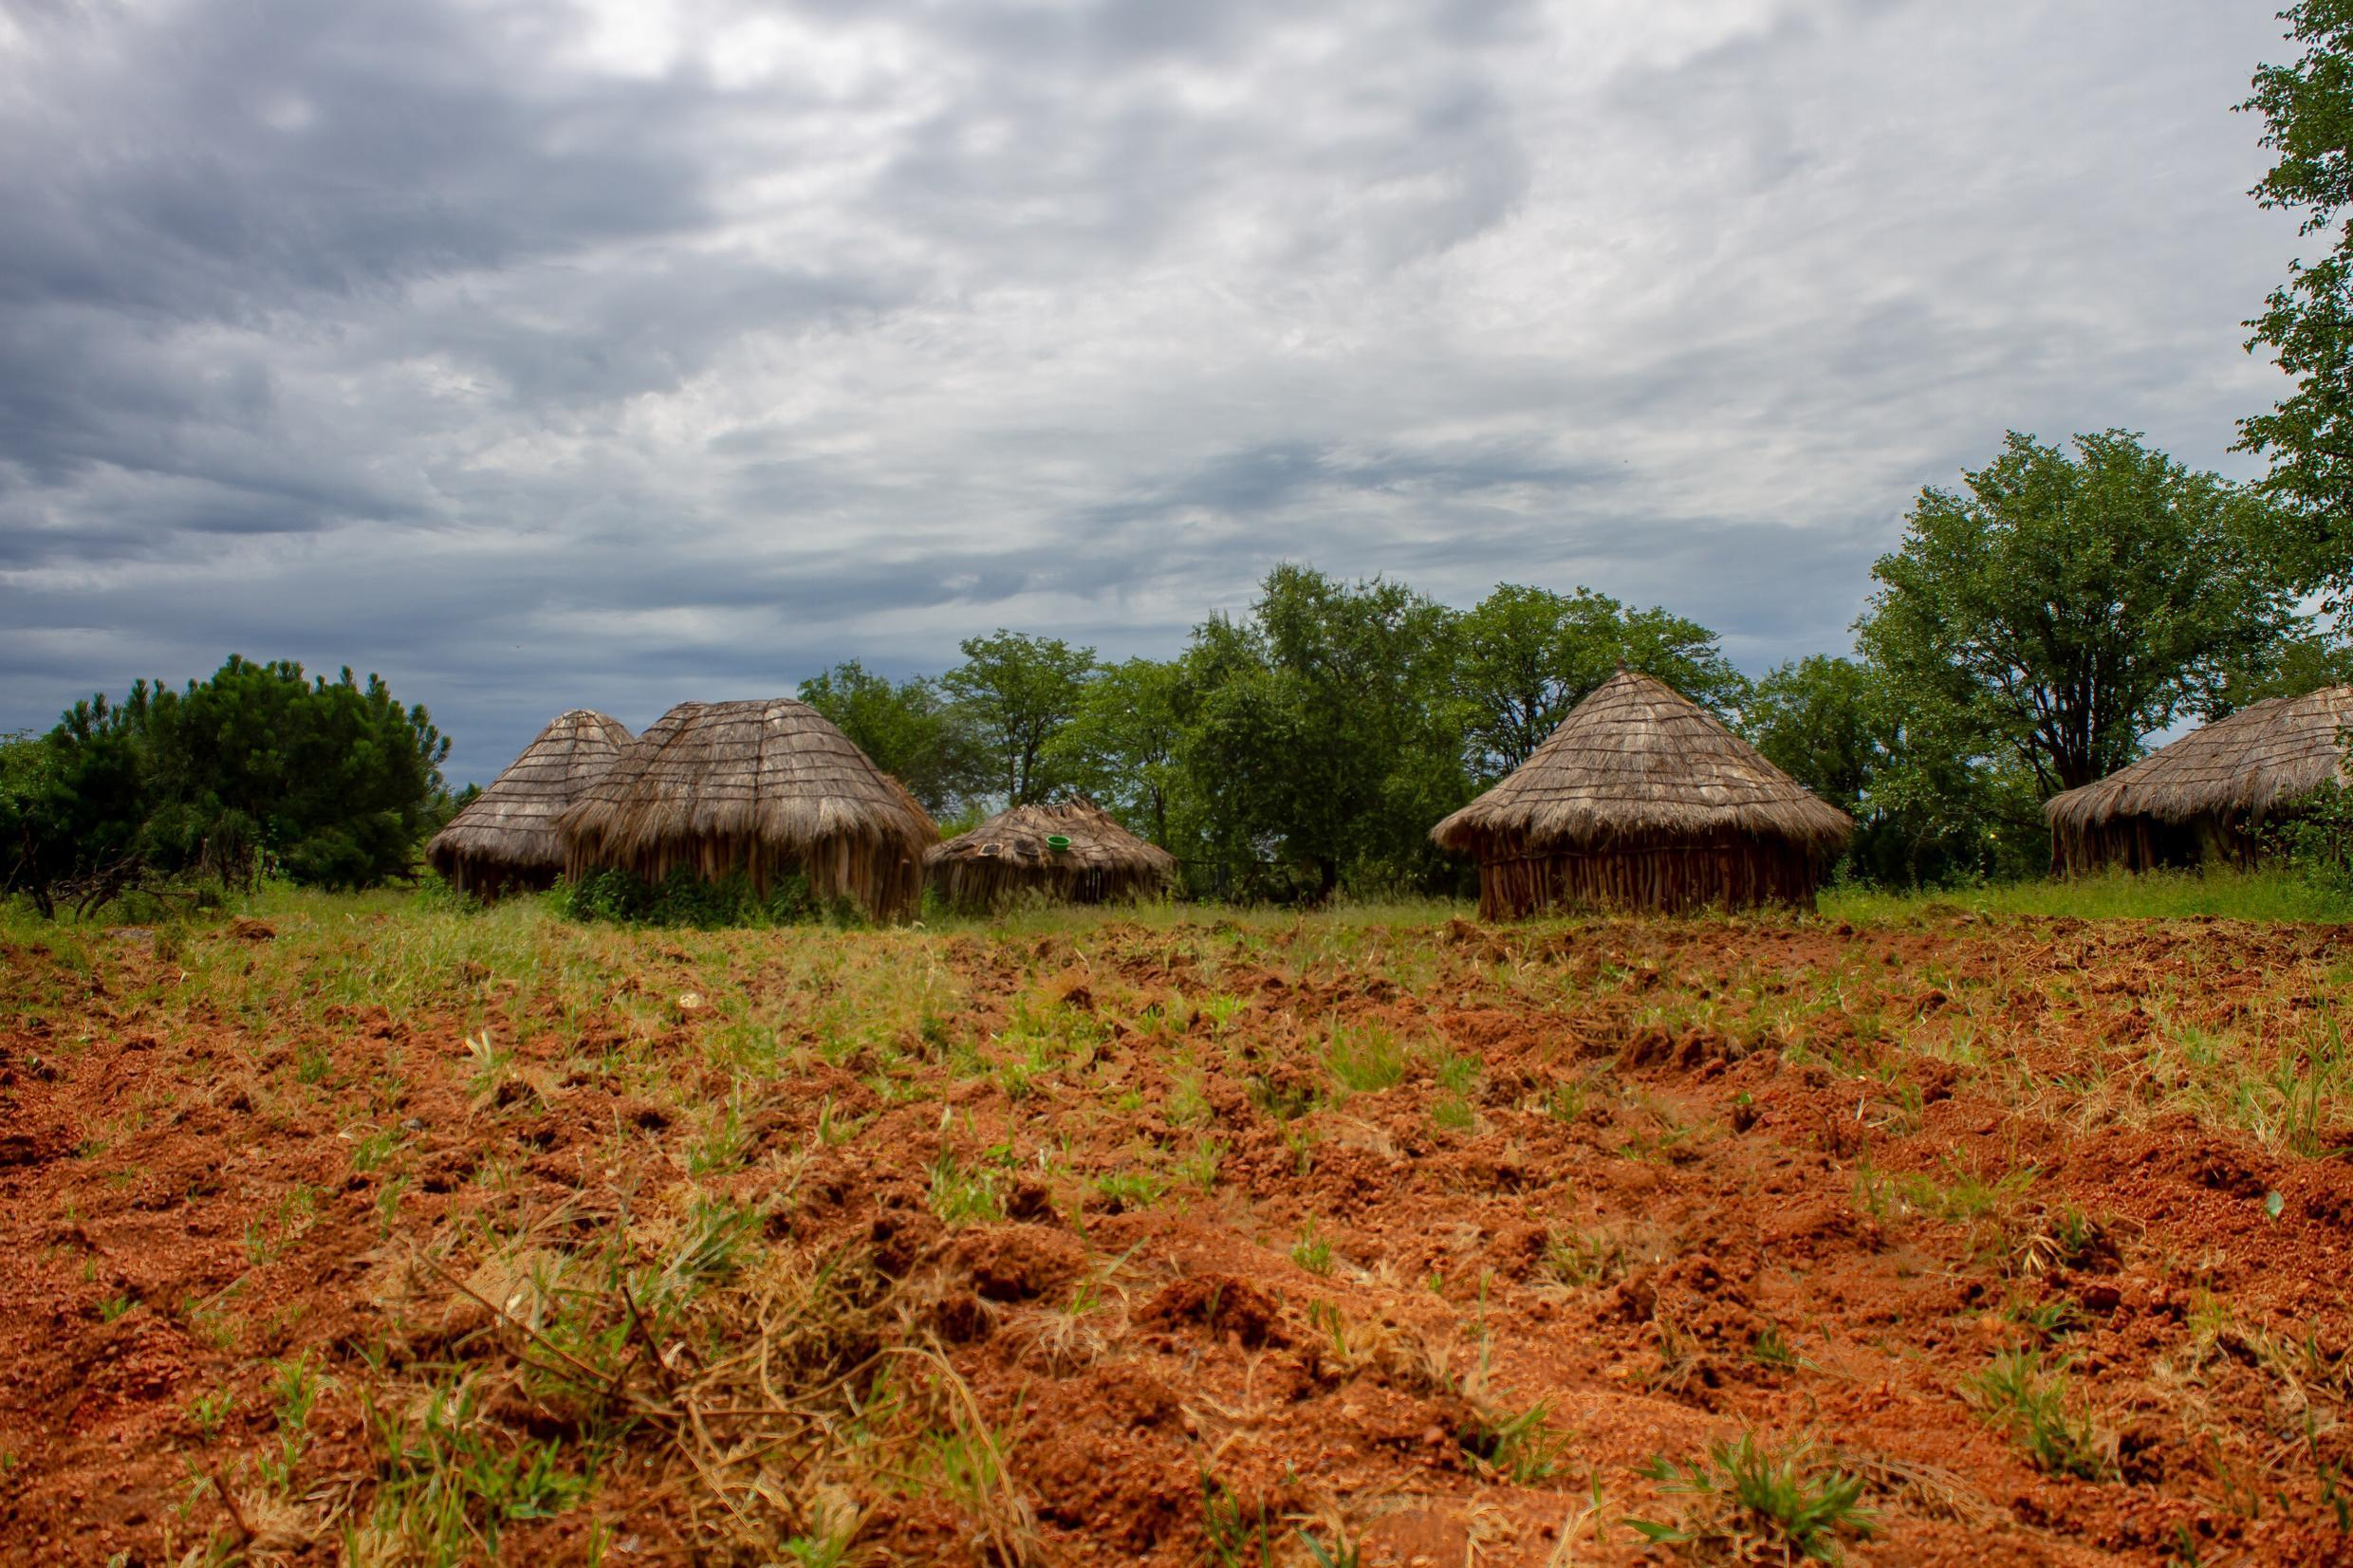 Drought hit Angola's southern Huila province, followed by violent downpours